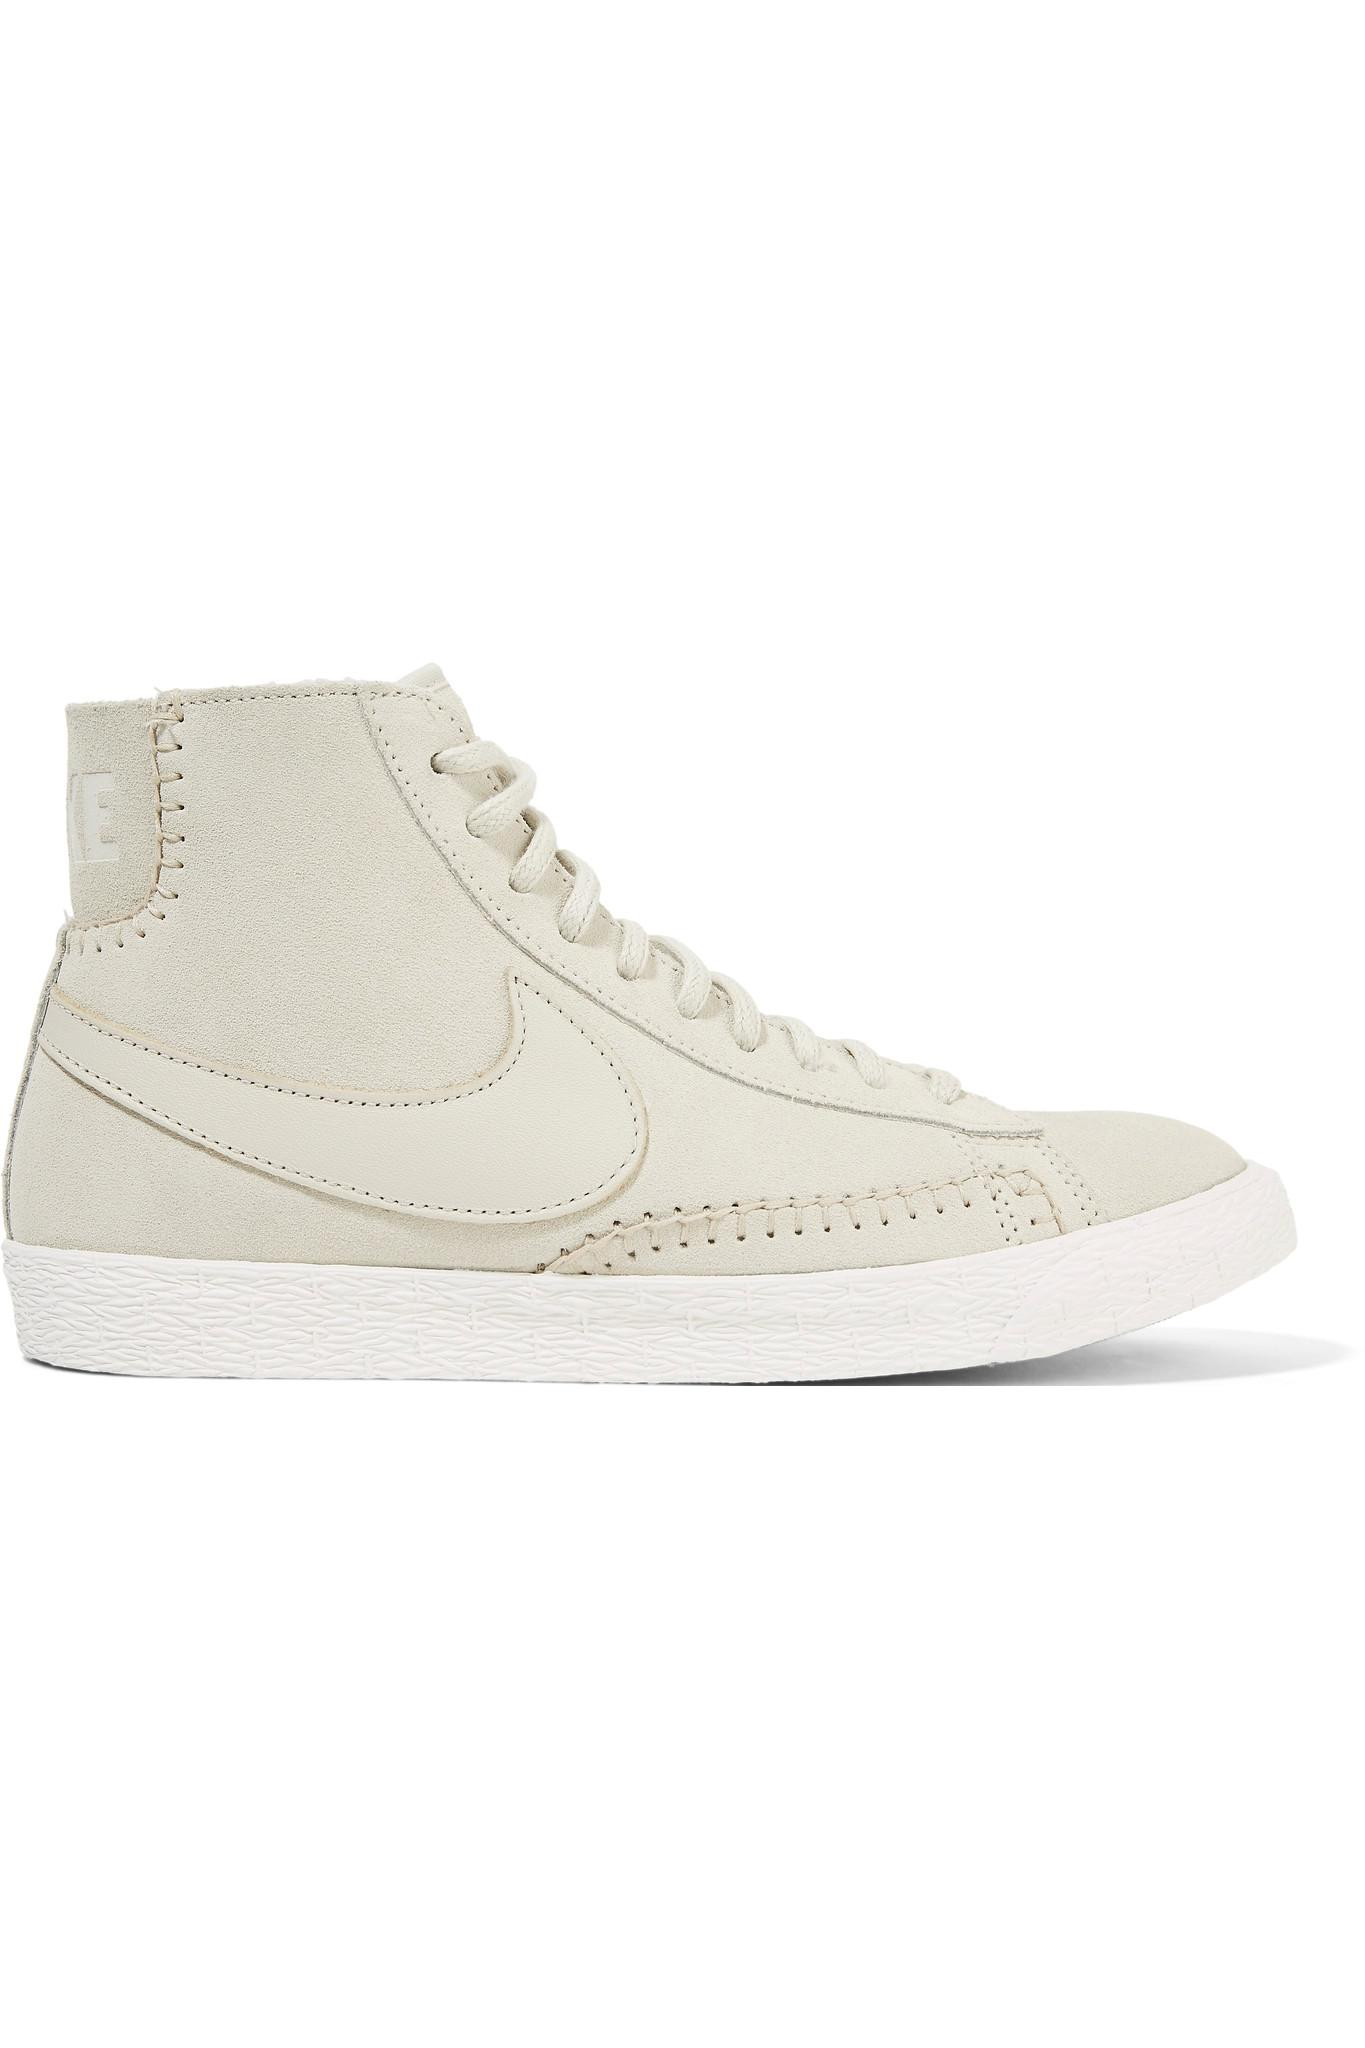 nike blazer mid suede and shearling high-top sneakers women